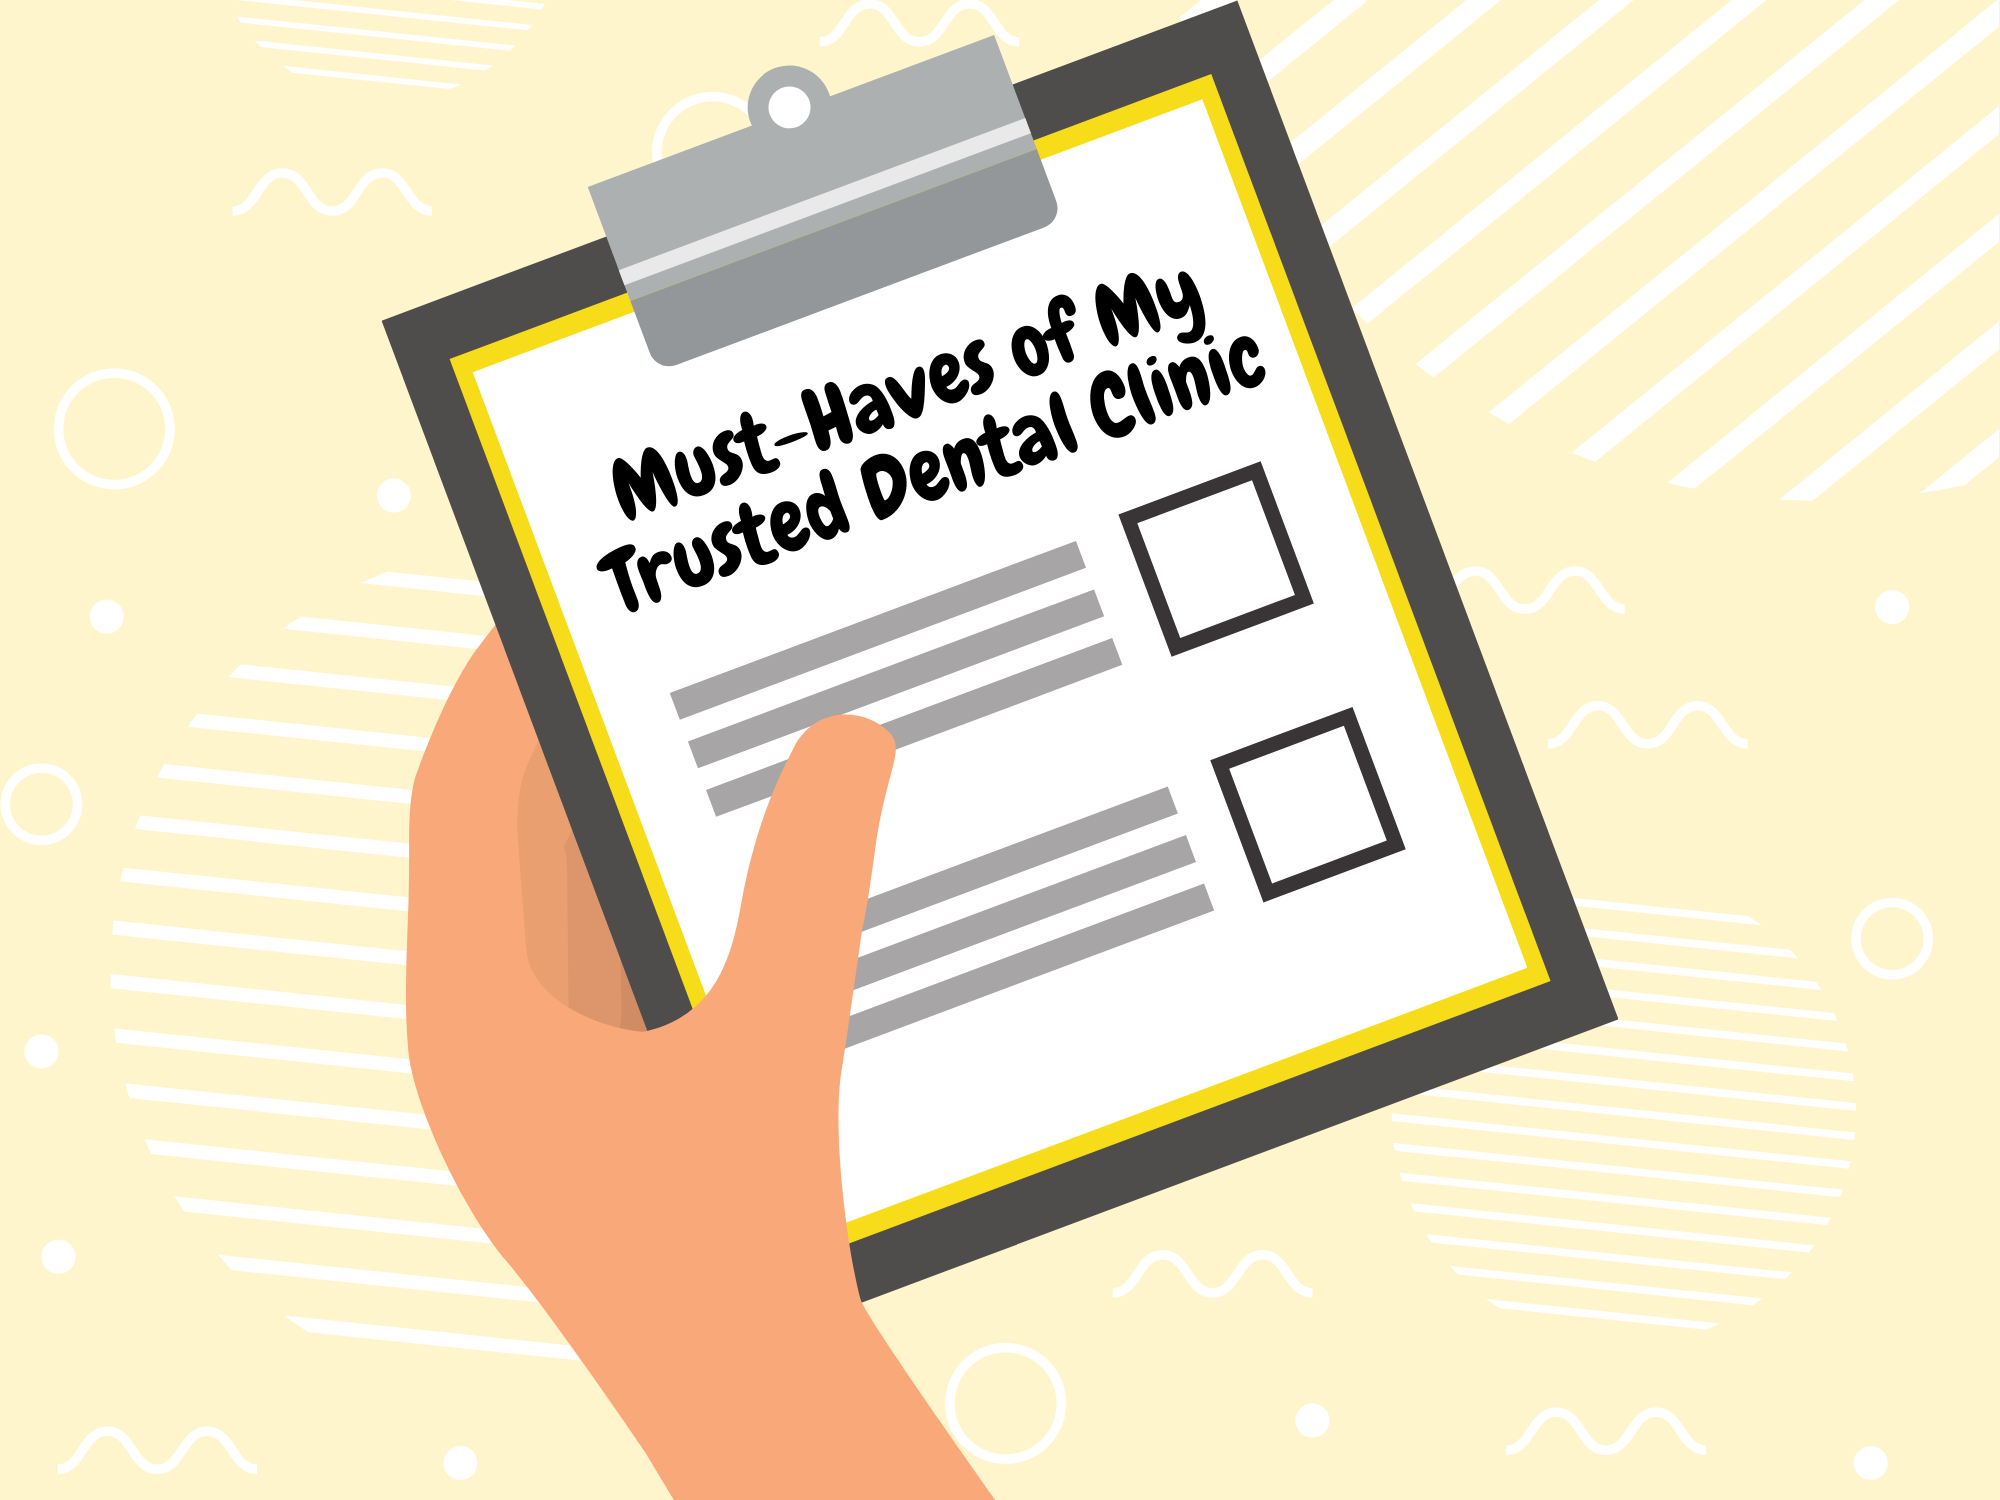 Must-Haves-of-My-Trusted-Dental-Clinic